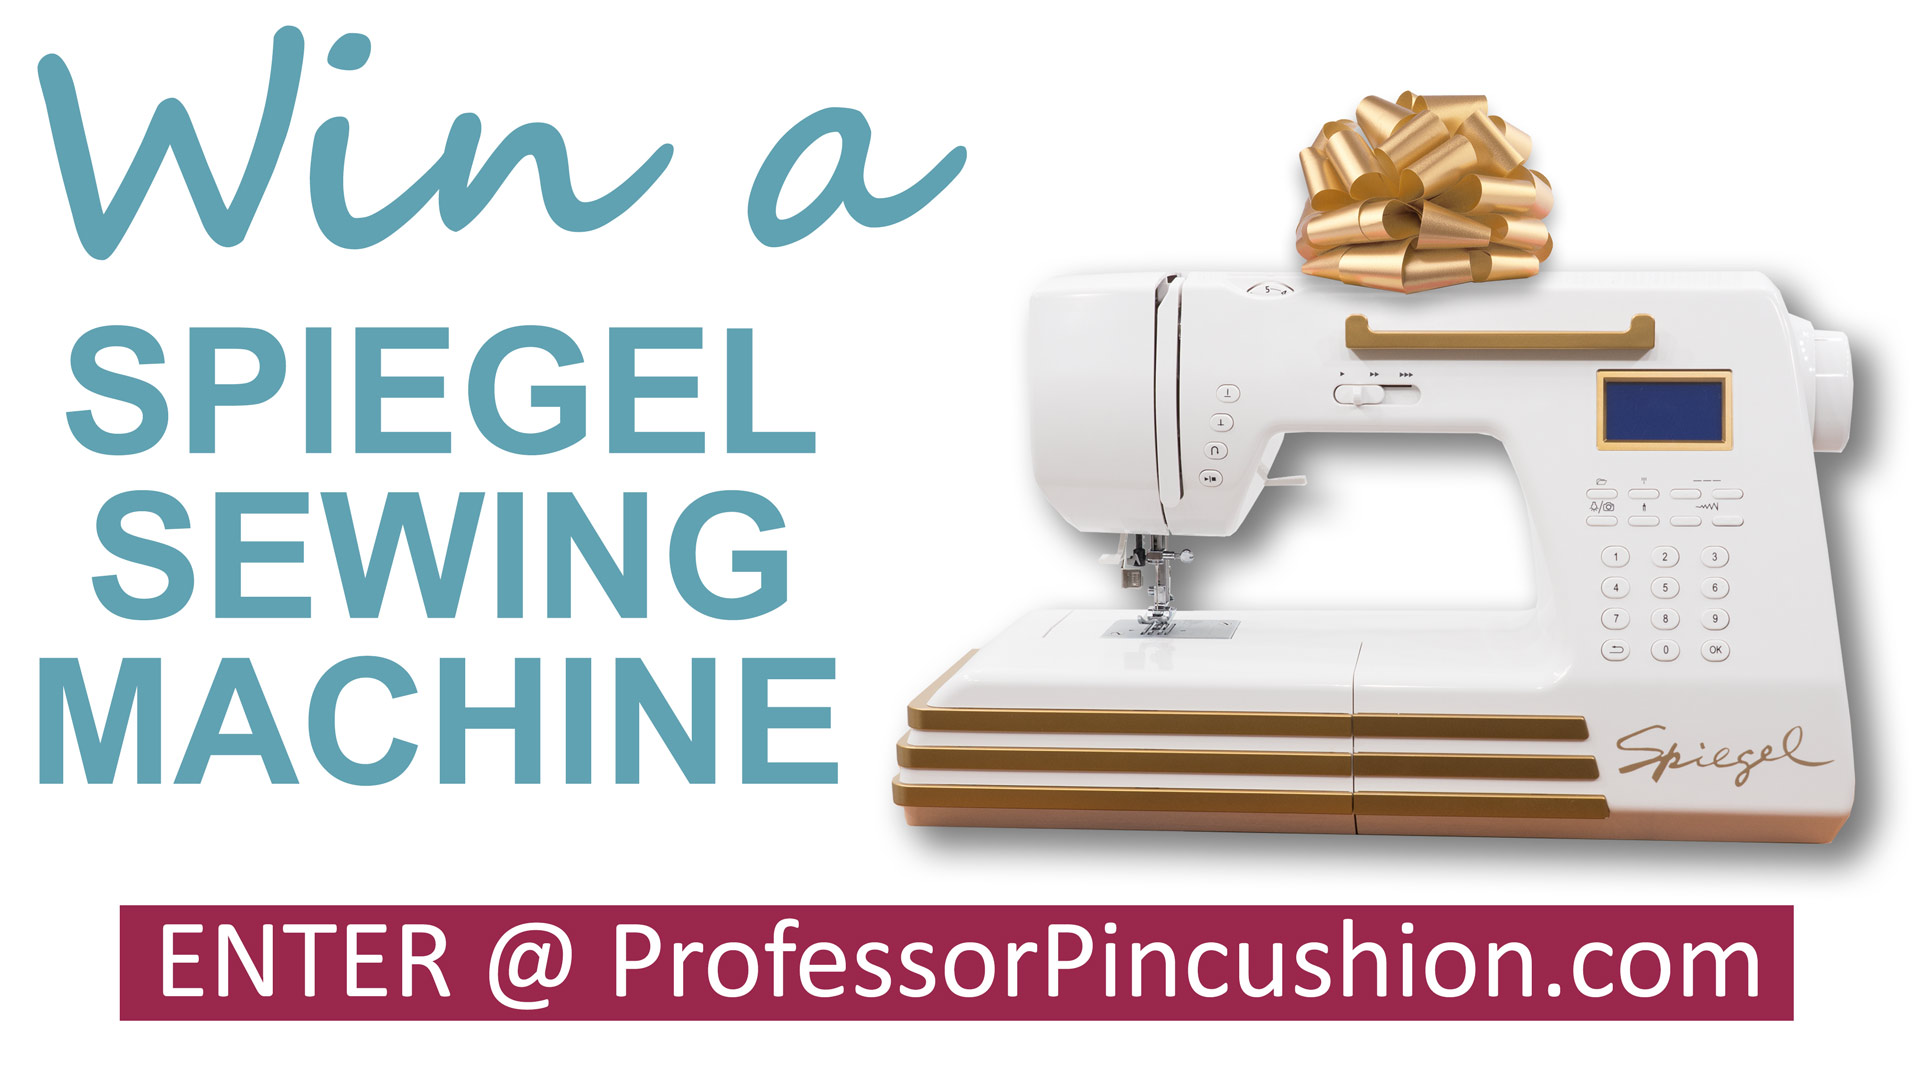 Spiegel sewing machine giveaway professor pincushion for Spiegel your name